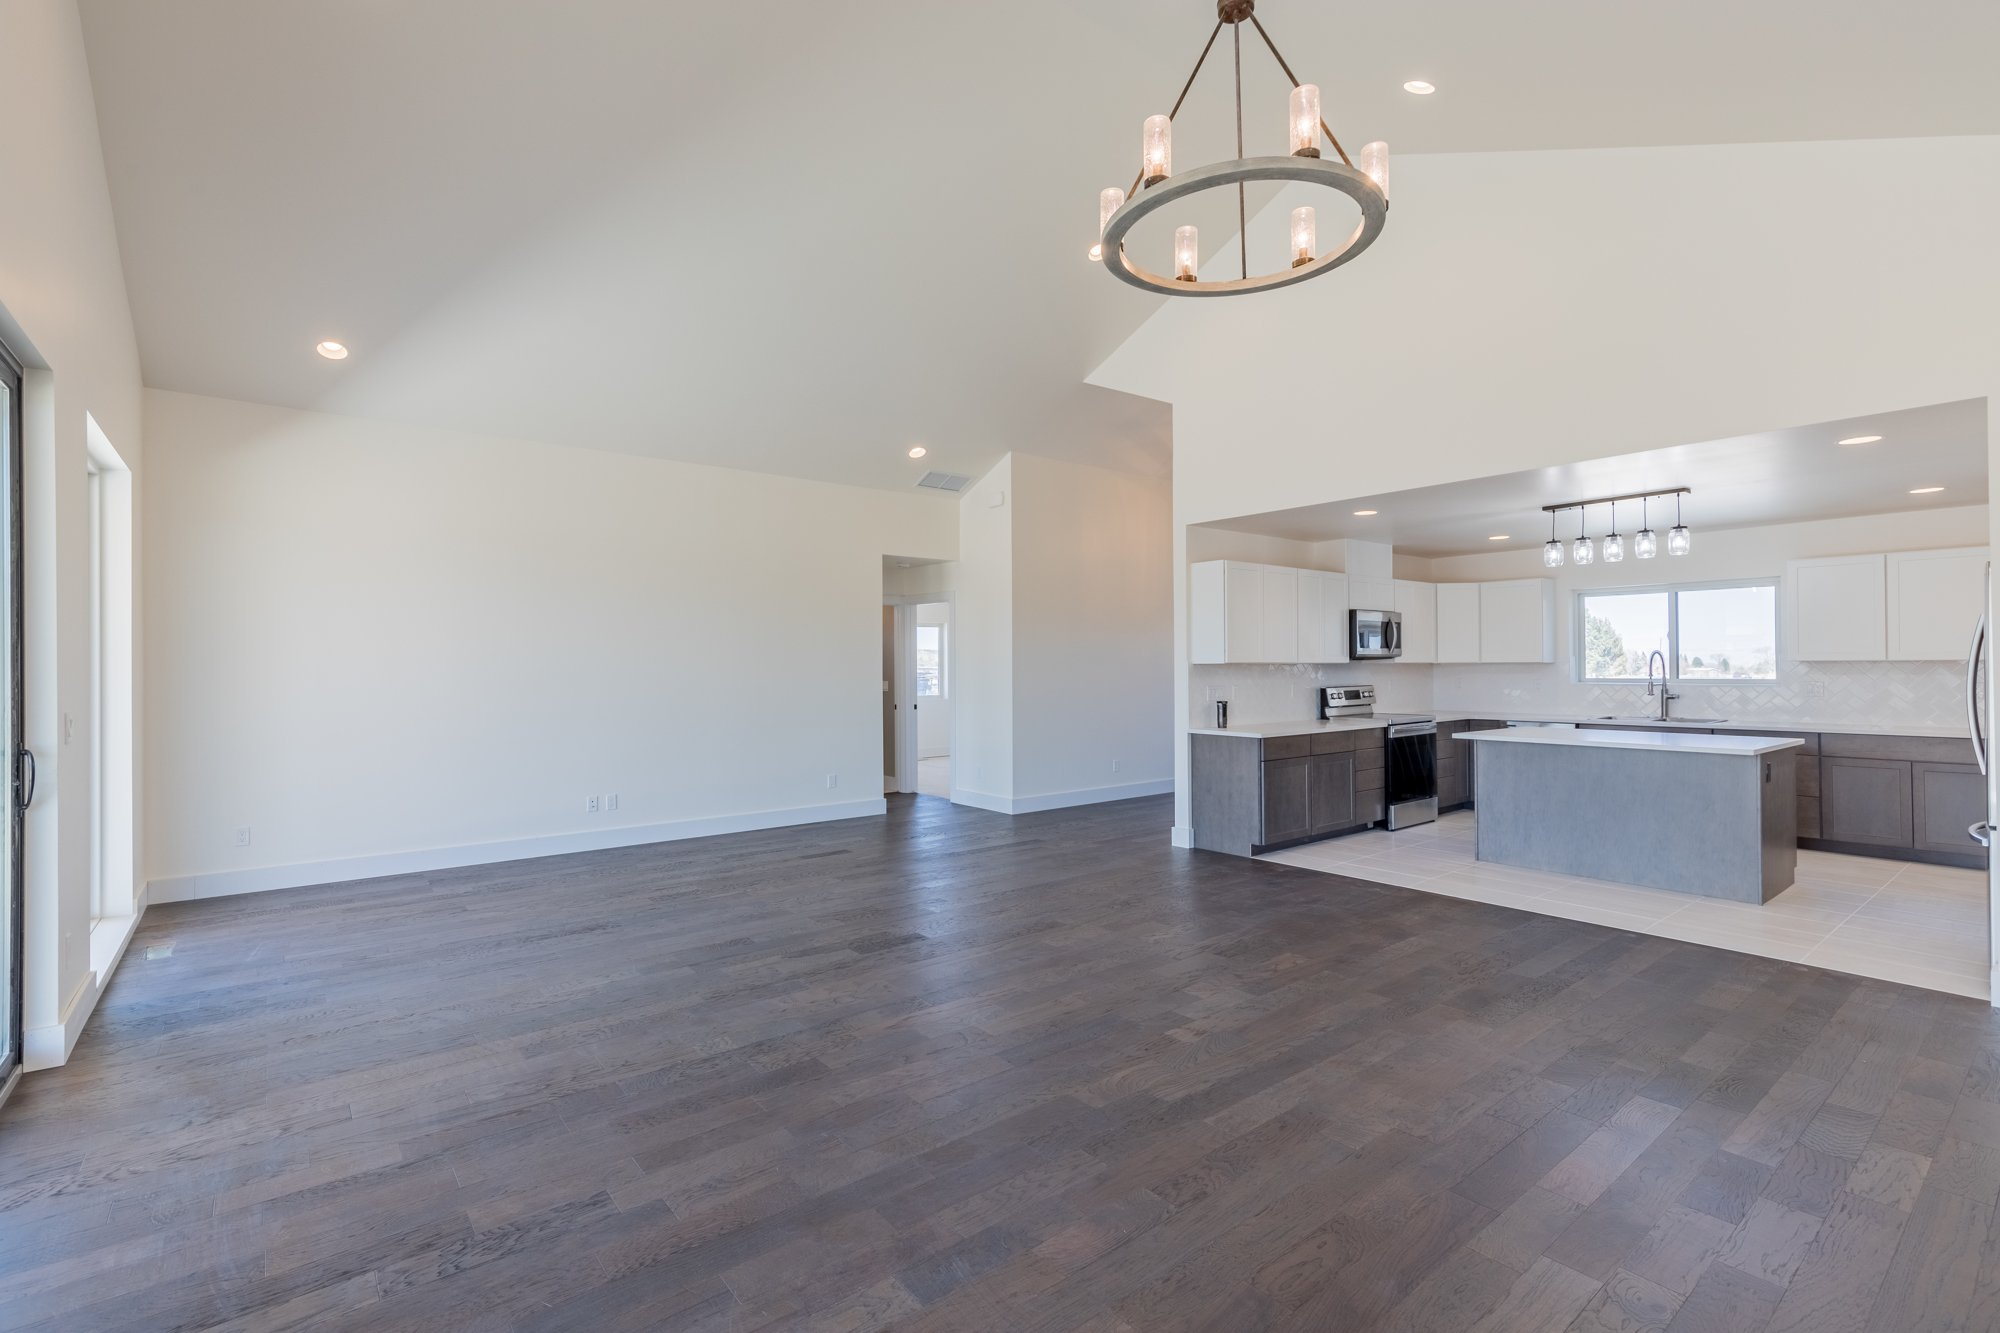 Engineered Oak Hardwood Floors - TBD Highway 550 Montrose, CO 81403 - Atha Team New Construction Real Estate